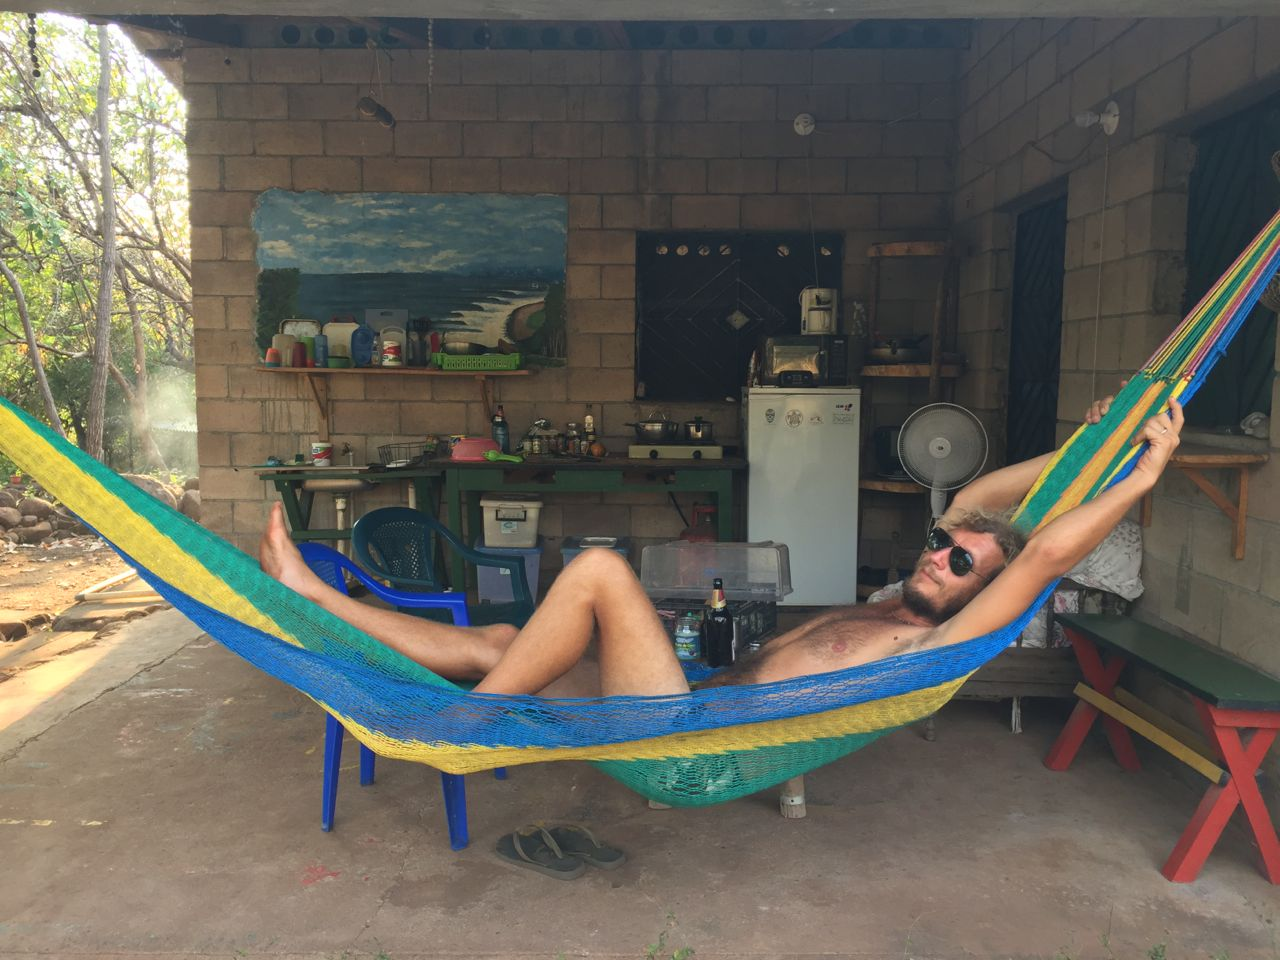 Chilling in Rancho Mango after surfing